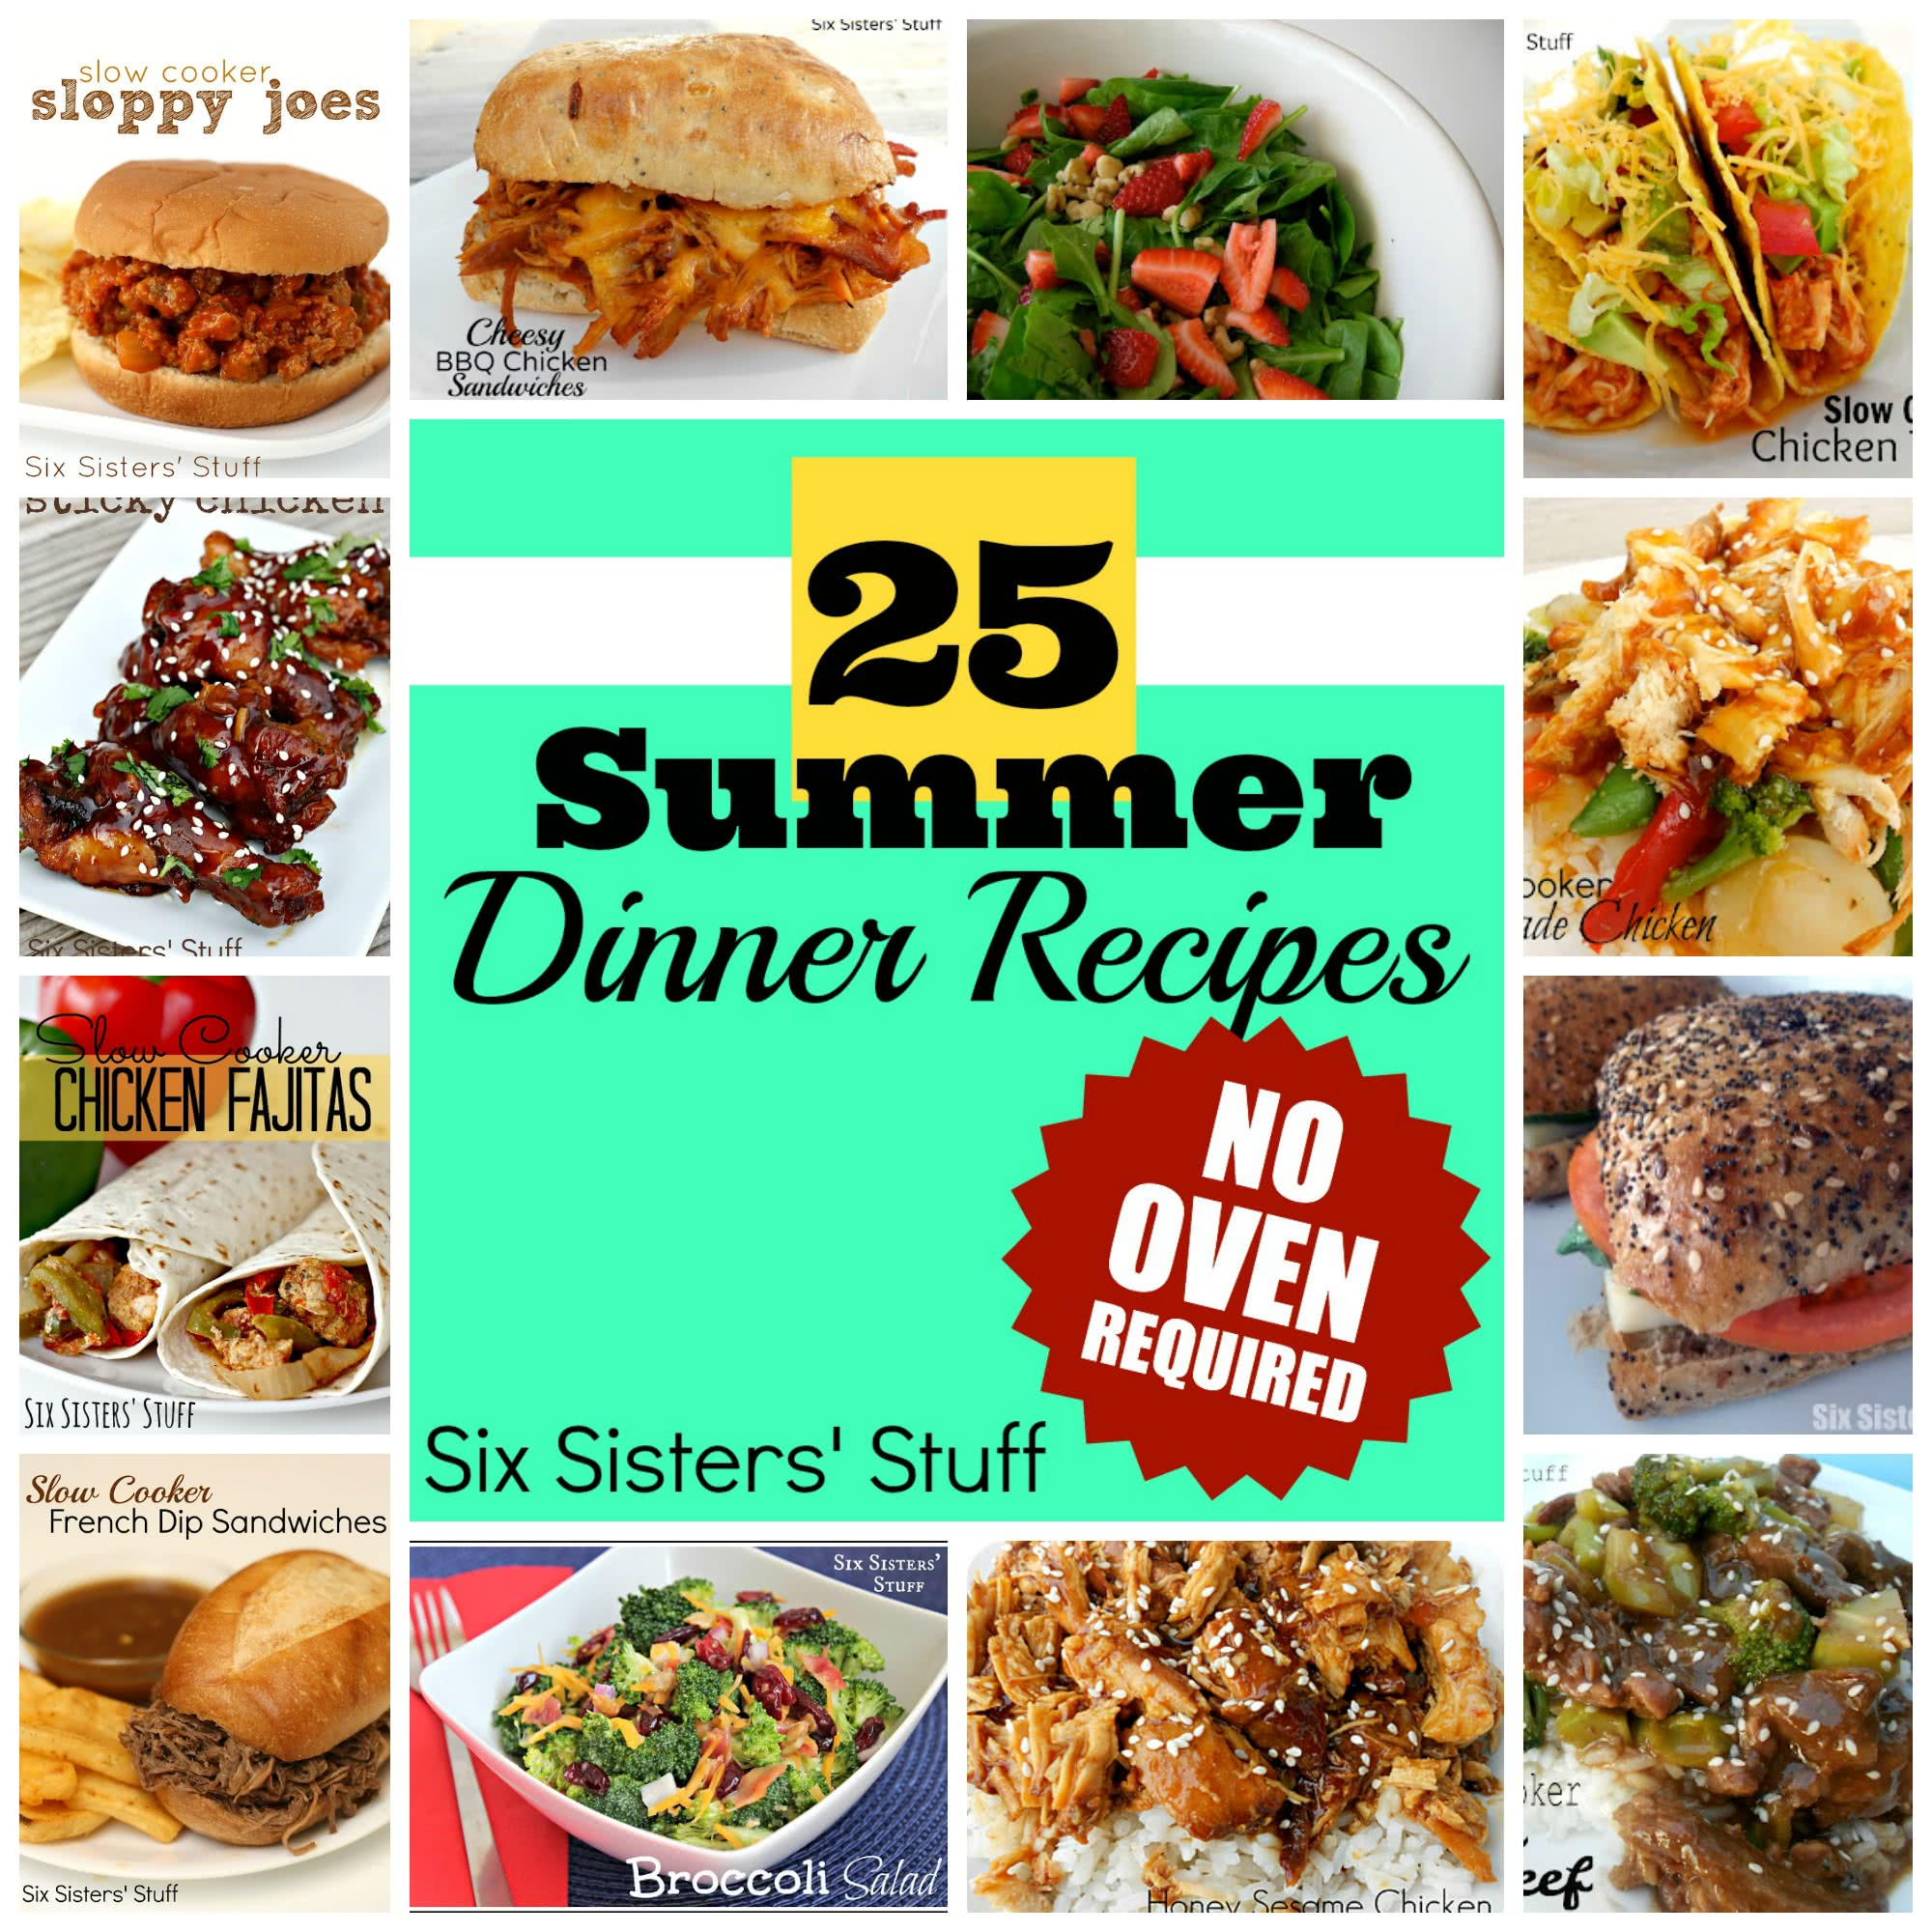 25 Summer Dinner Recipes- No Oven Required!